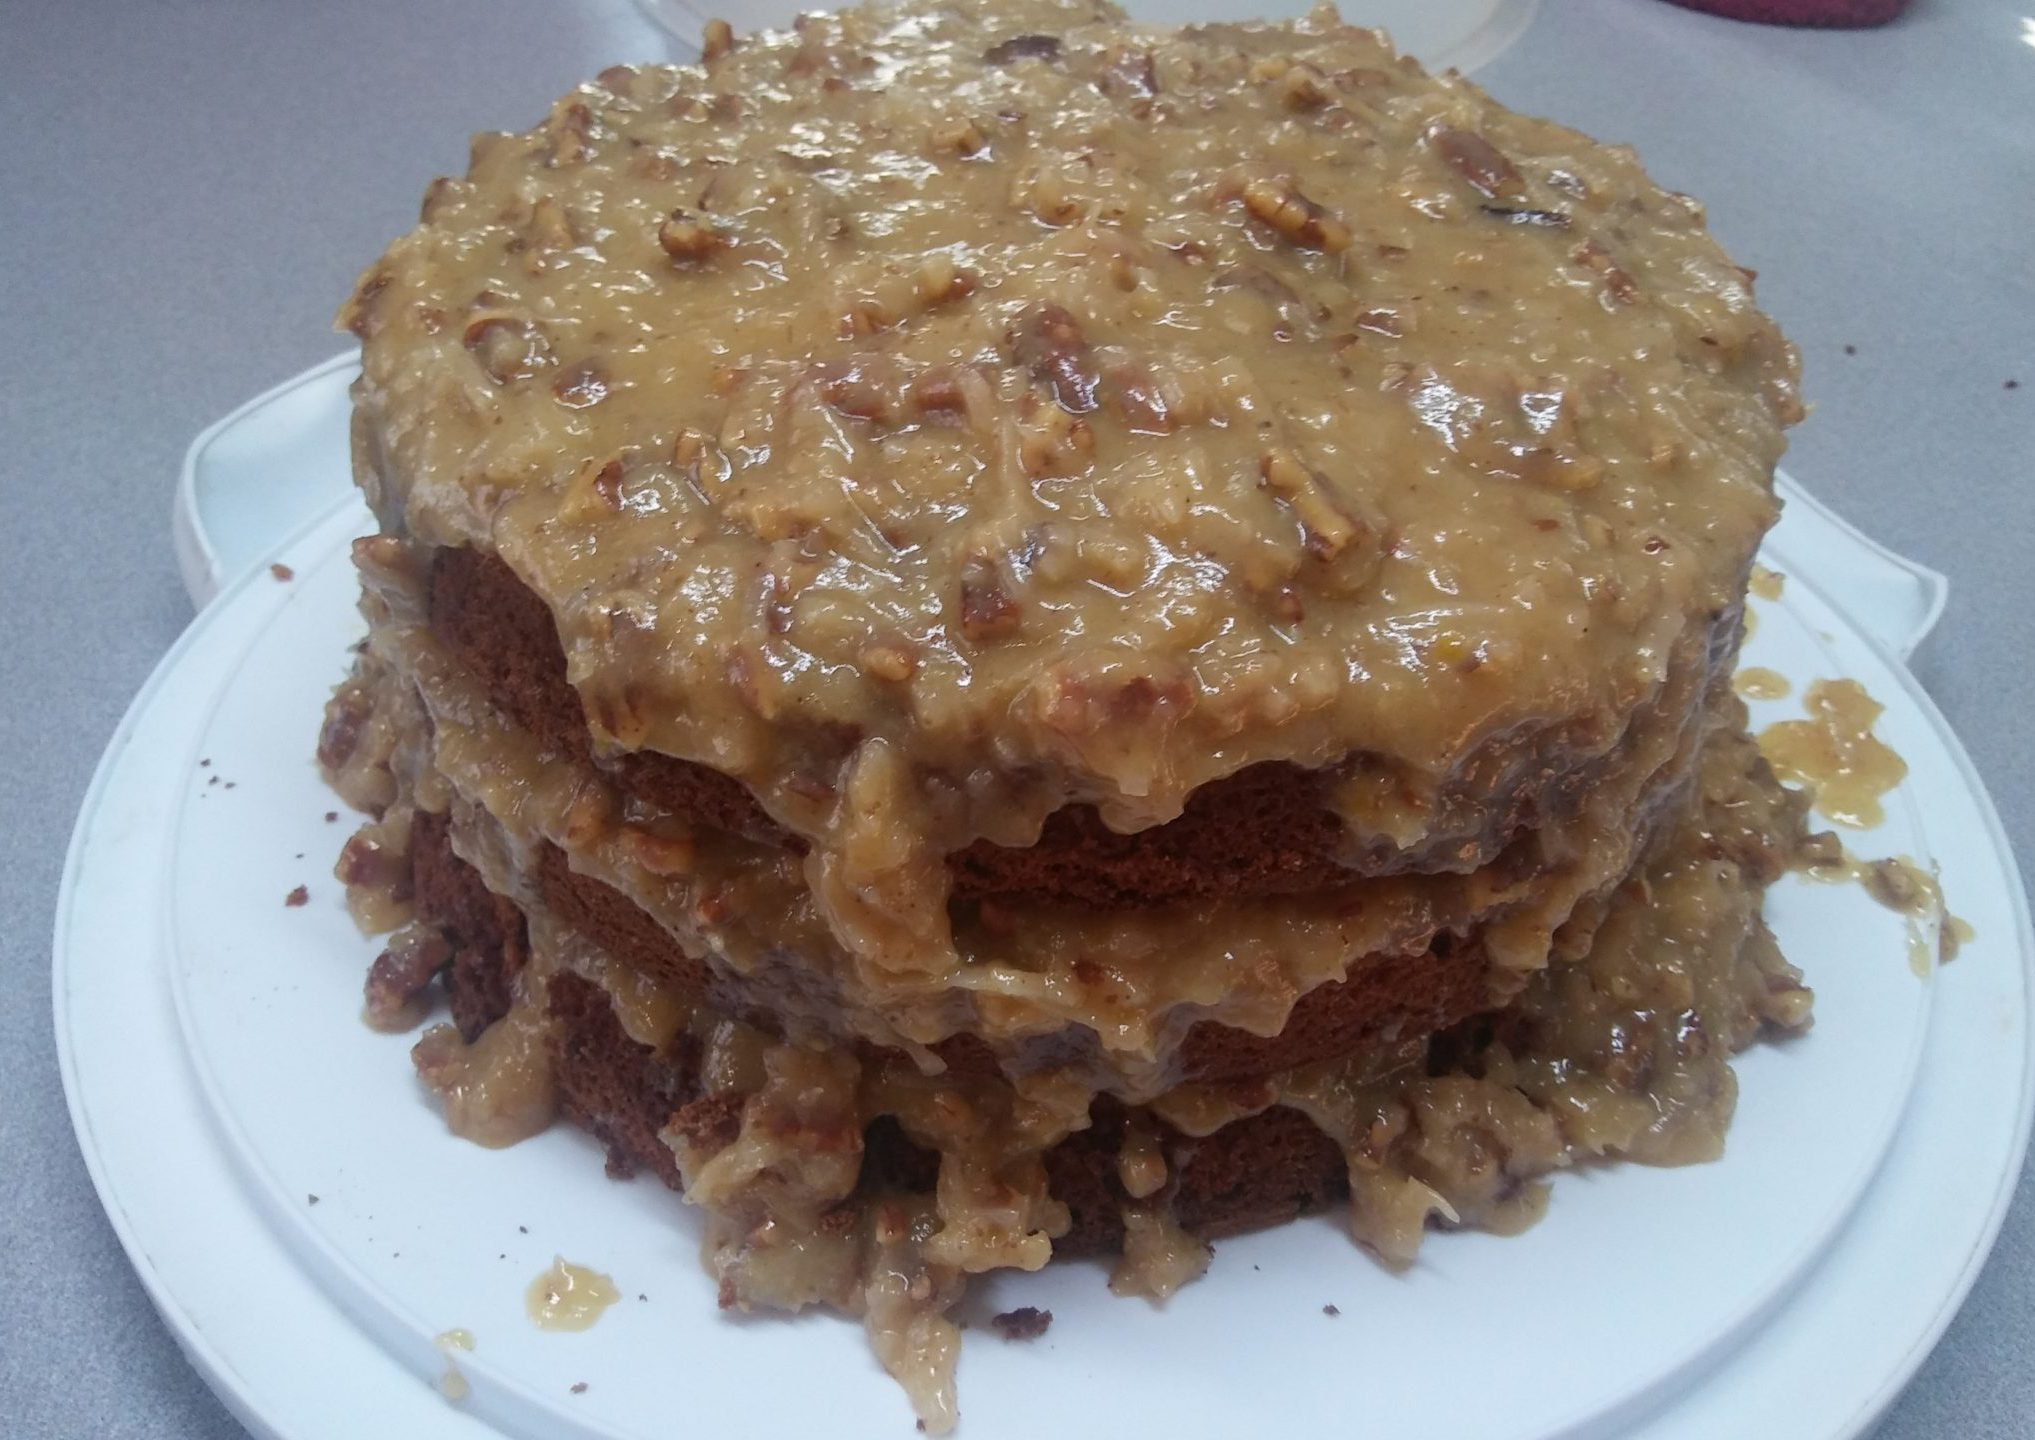 Homemade German Chocolate Cake Recipe – Moist and Delicious